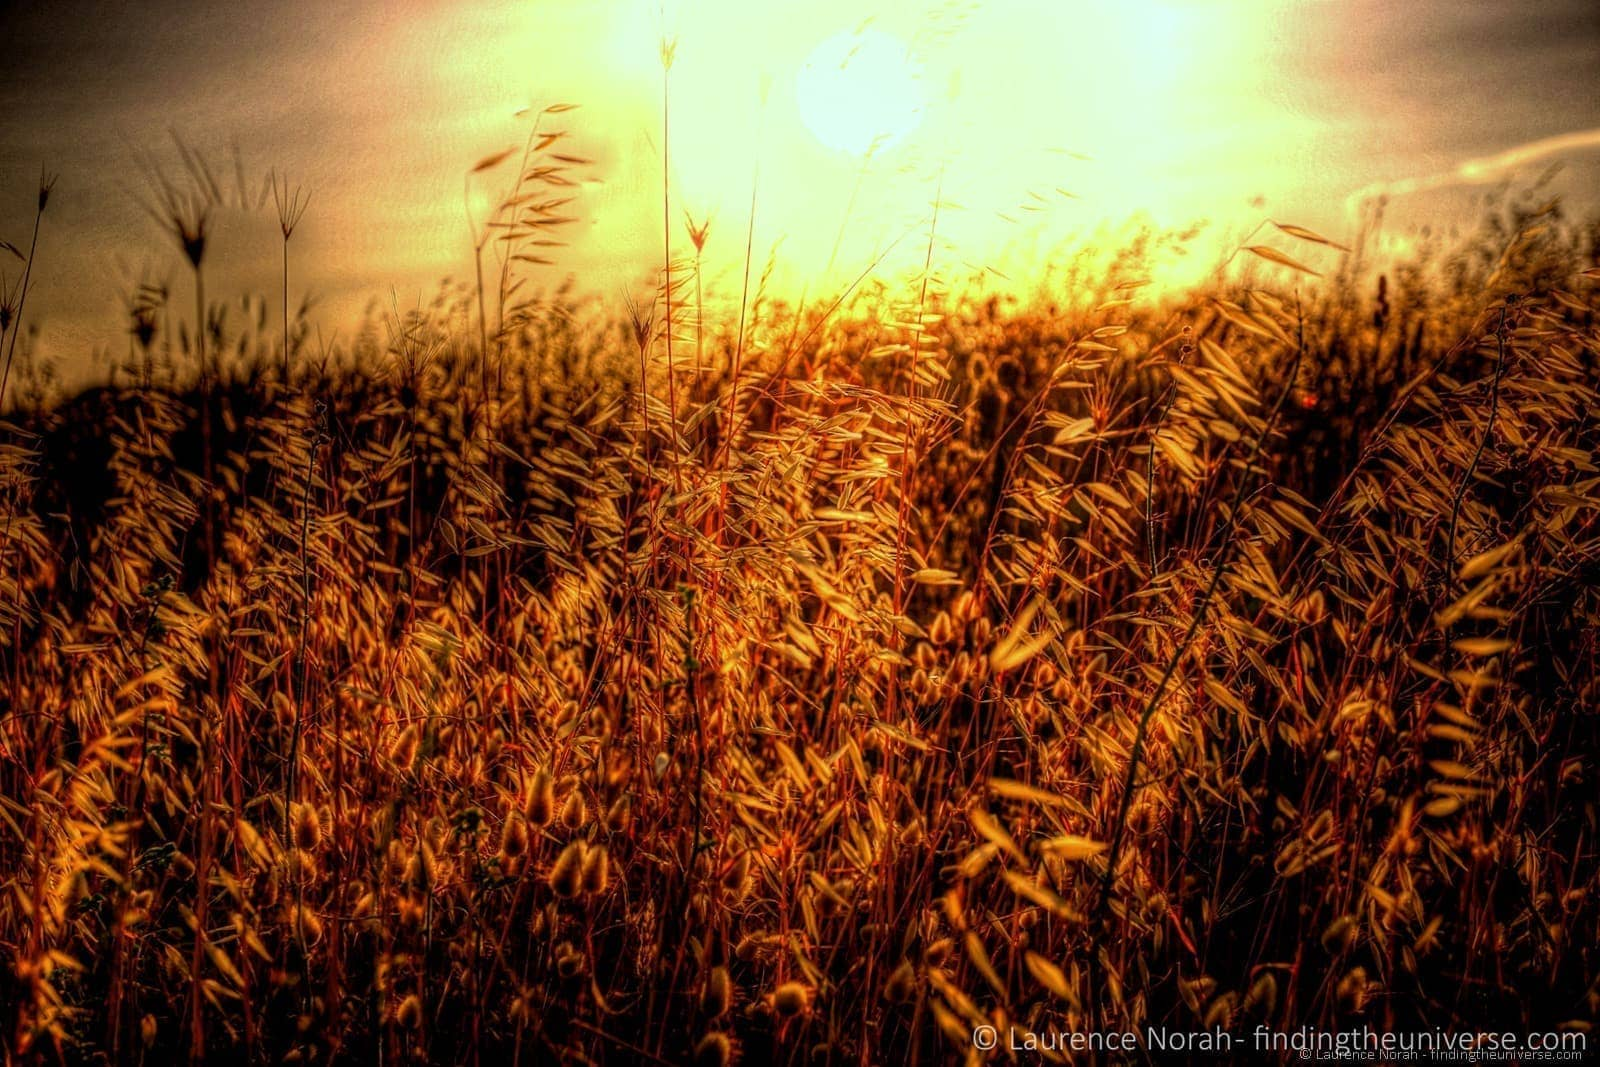 Grass stalks sunset field light scaled